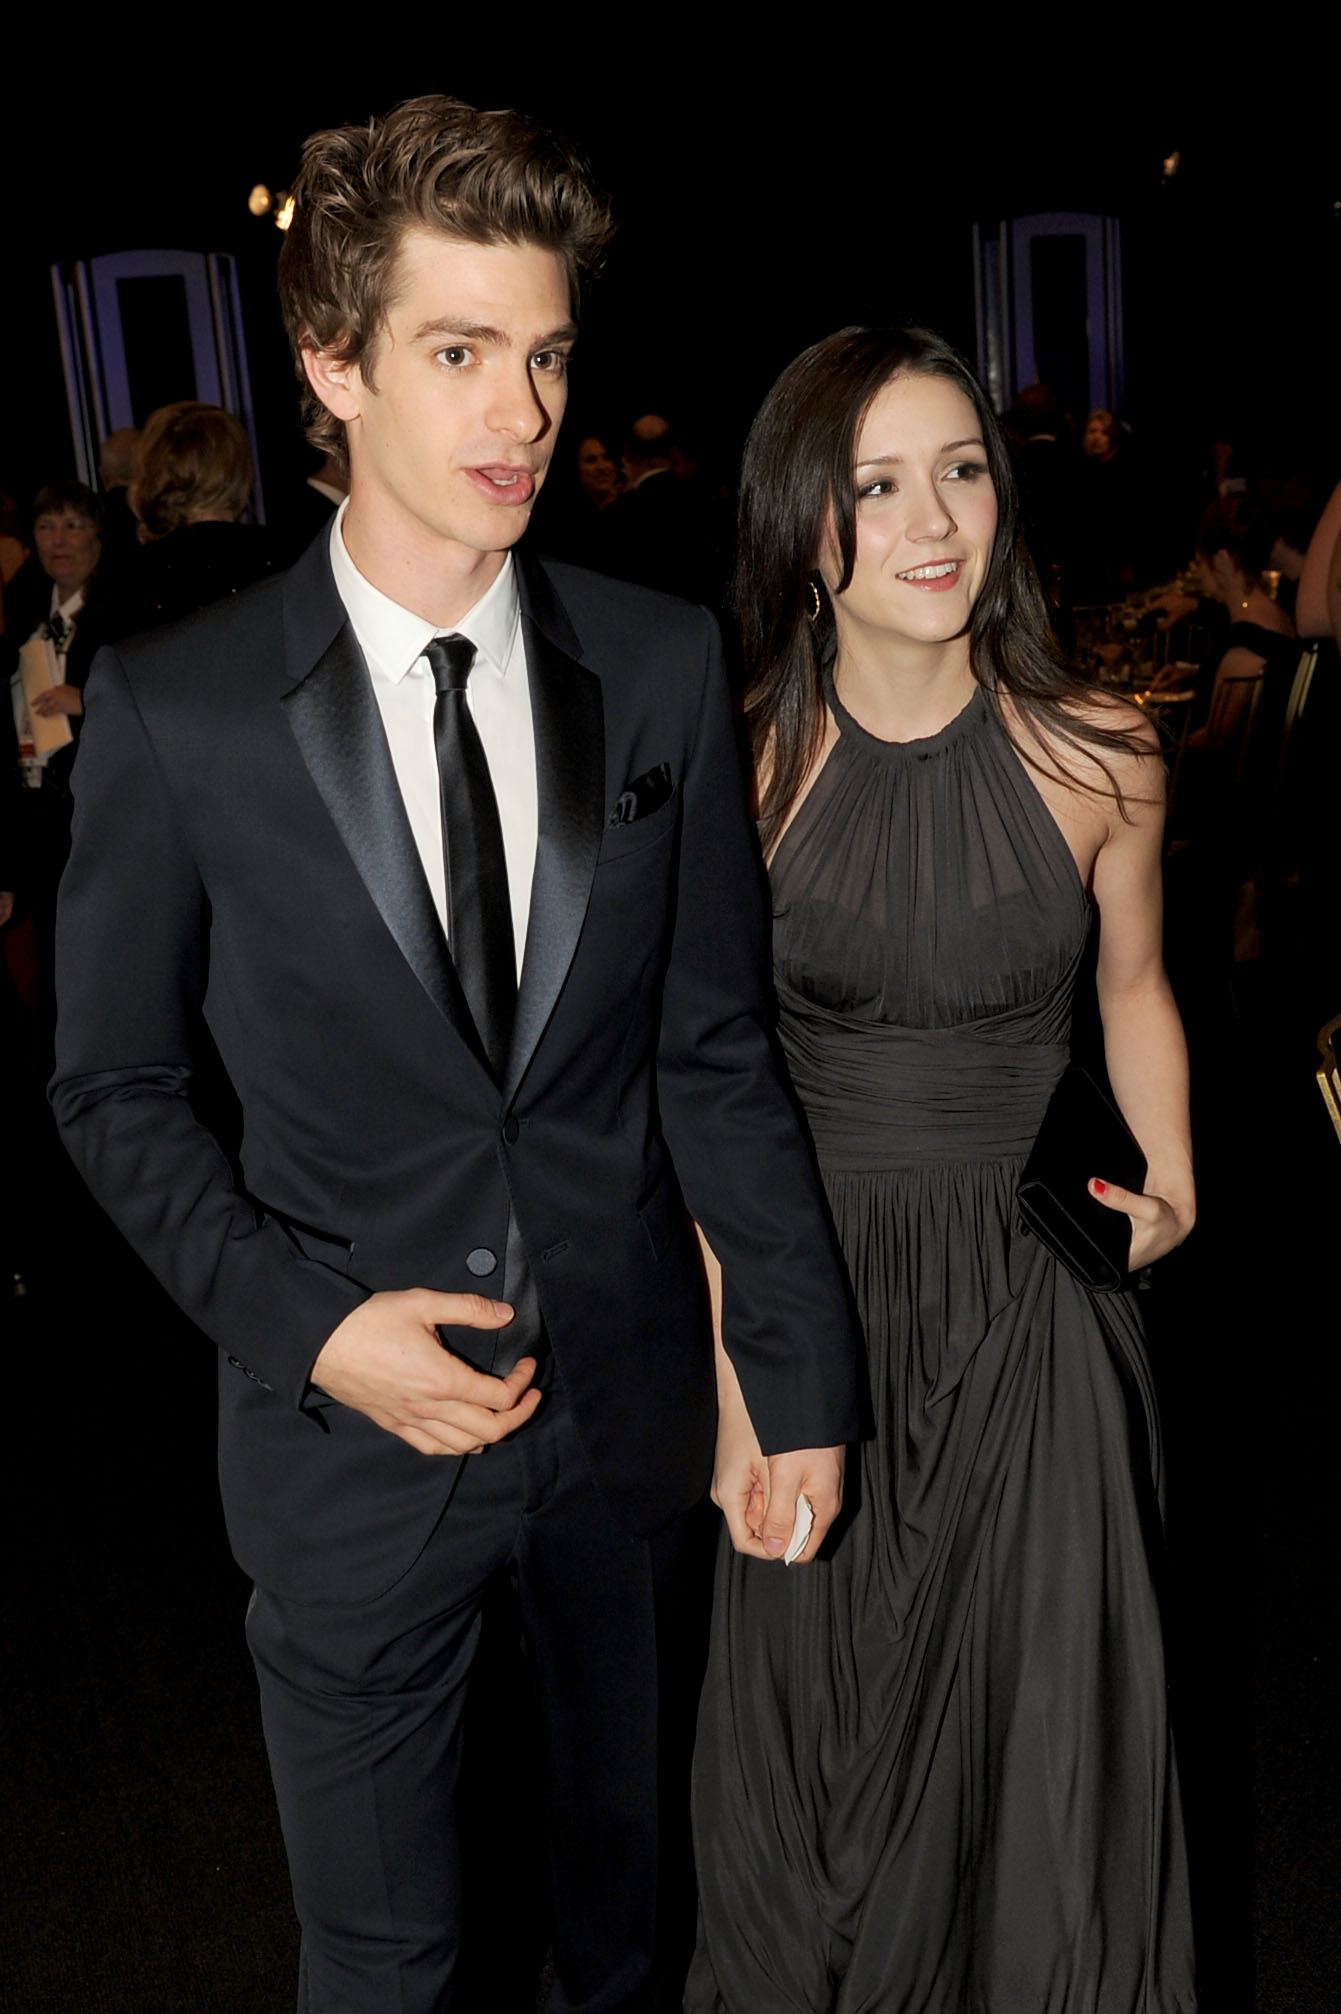 Andrew Garfield (L) and Shannon Woodward attend the cocktail reception during the 17th Annual Screen Actors Guild Awards held at The Shrine Auditorium on January 30, 2011 in Los Angeles, California.